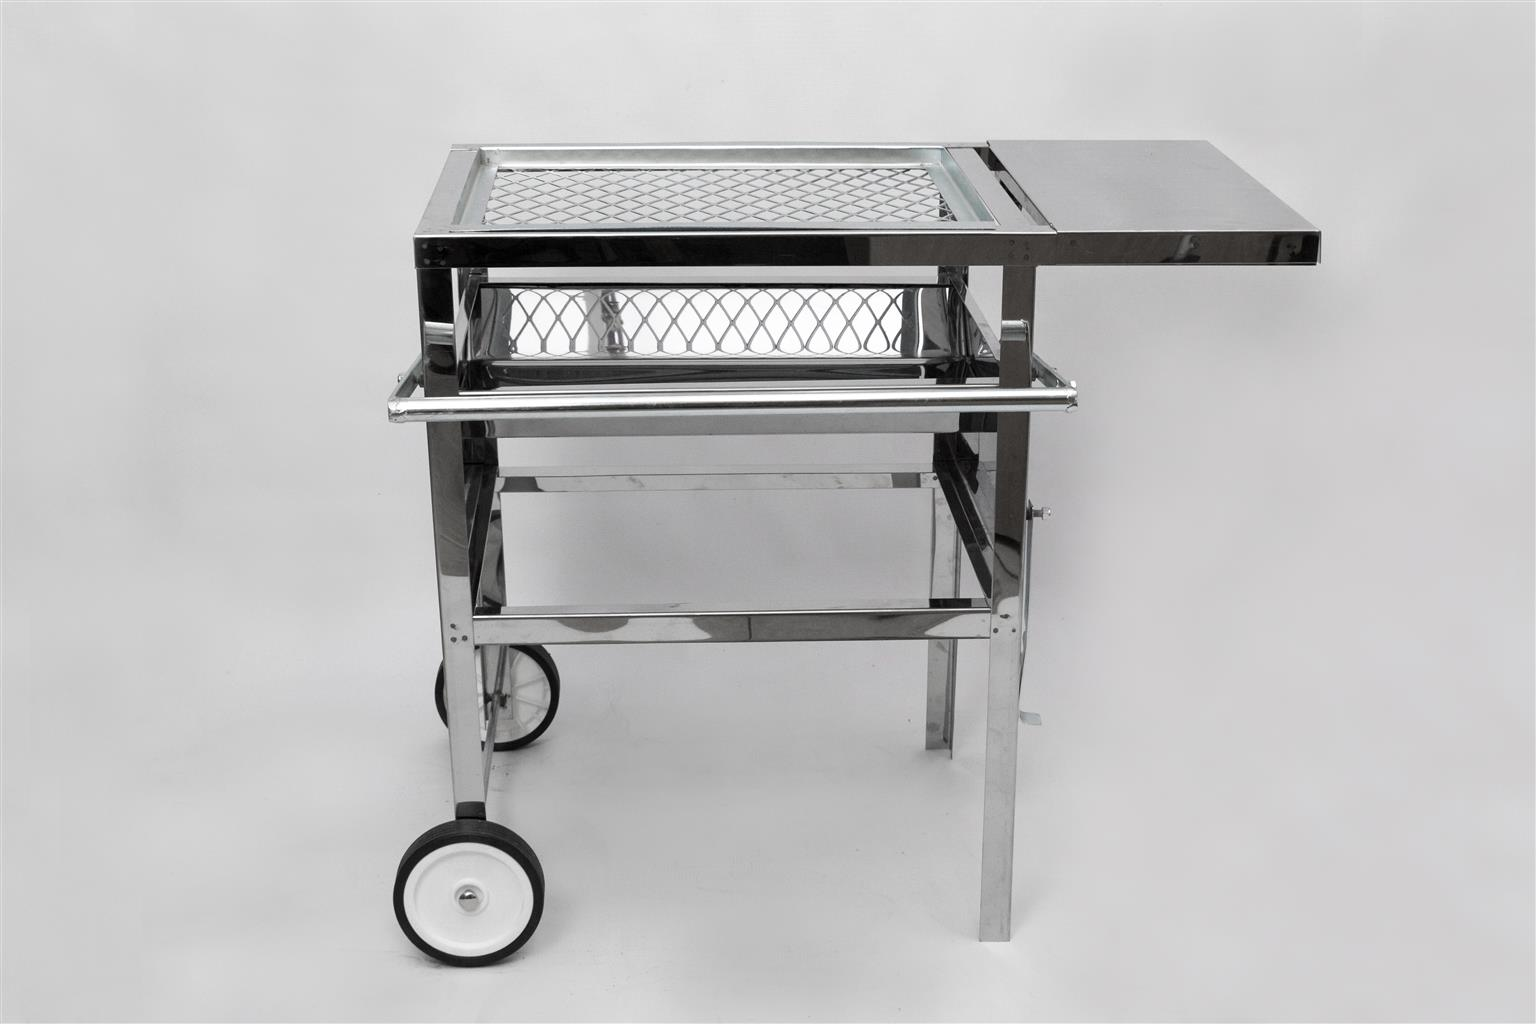 Charcoal/Wood Braais - Stainless Steel